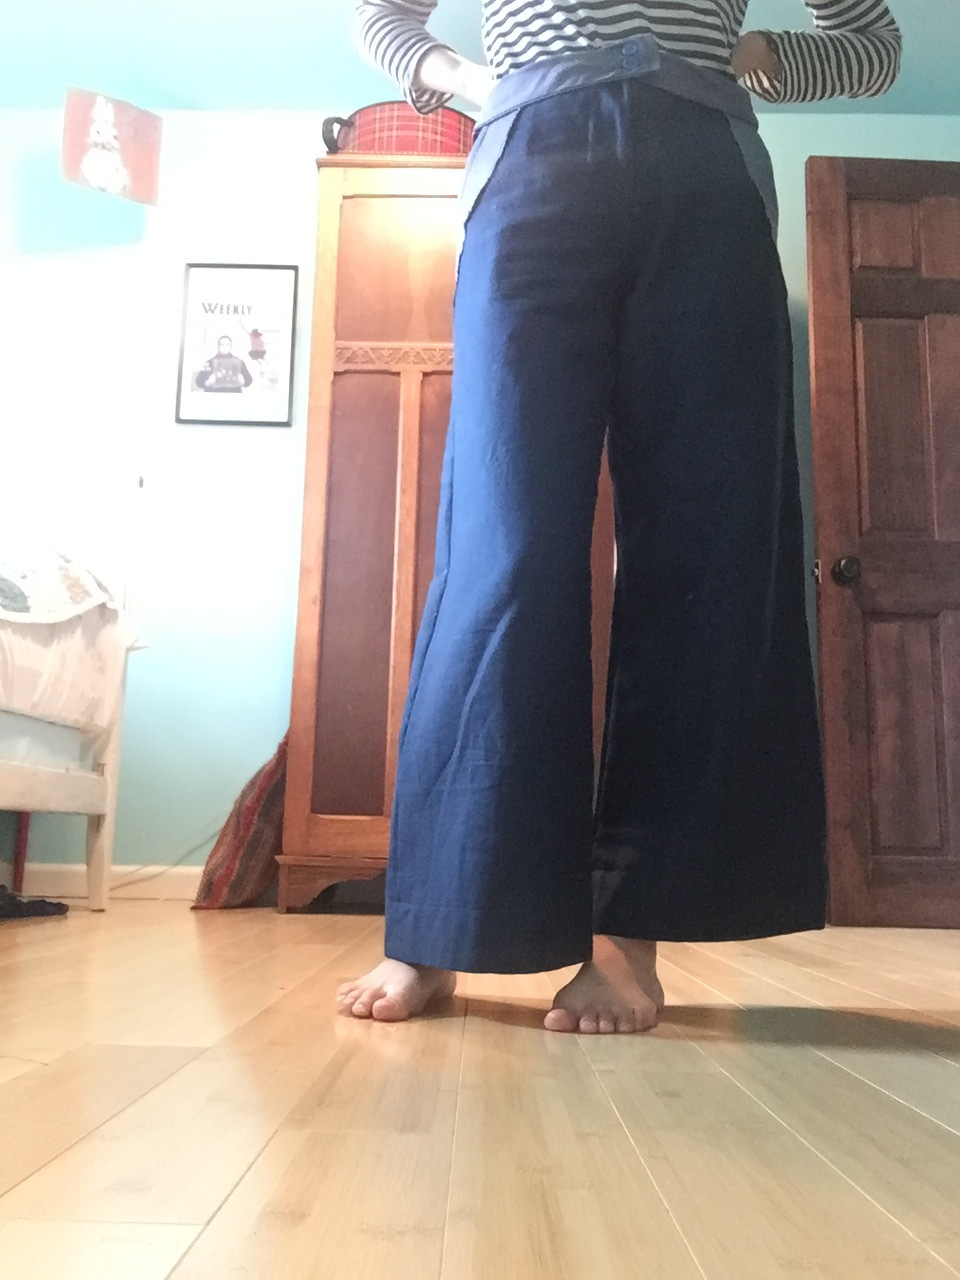 pants for learning (a long, slow, maddening process built of hair-tearing frustration and a single burst of euphoric relief)